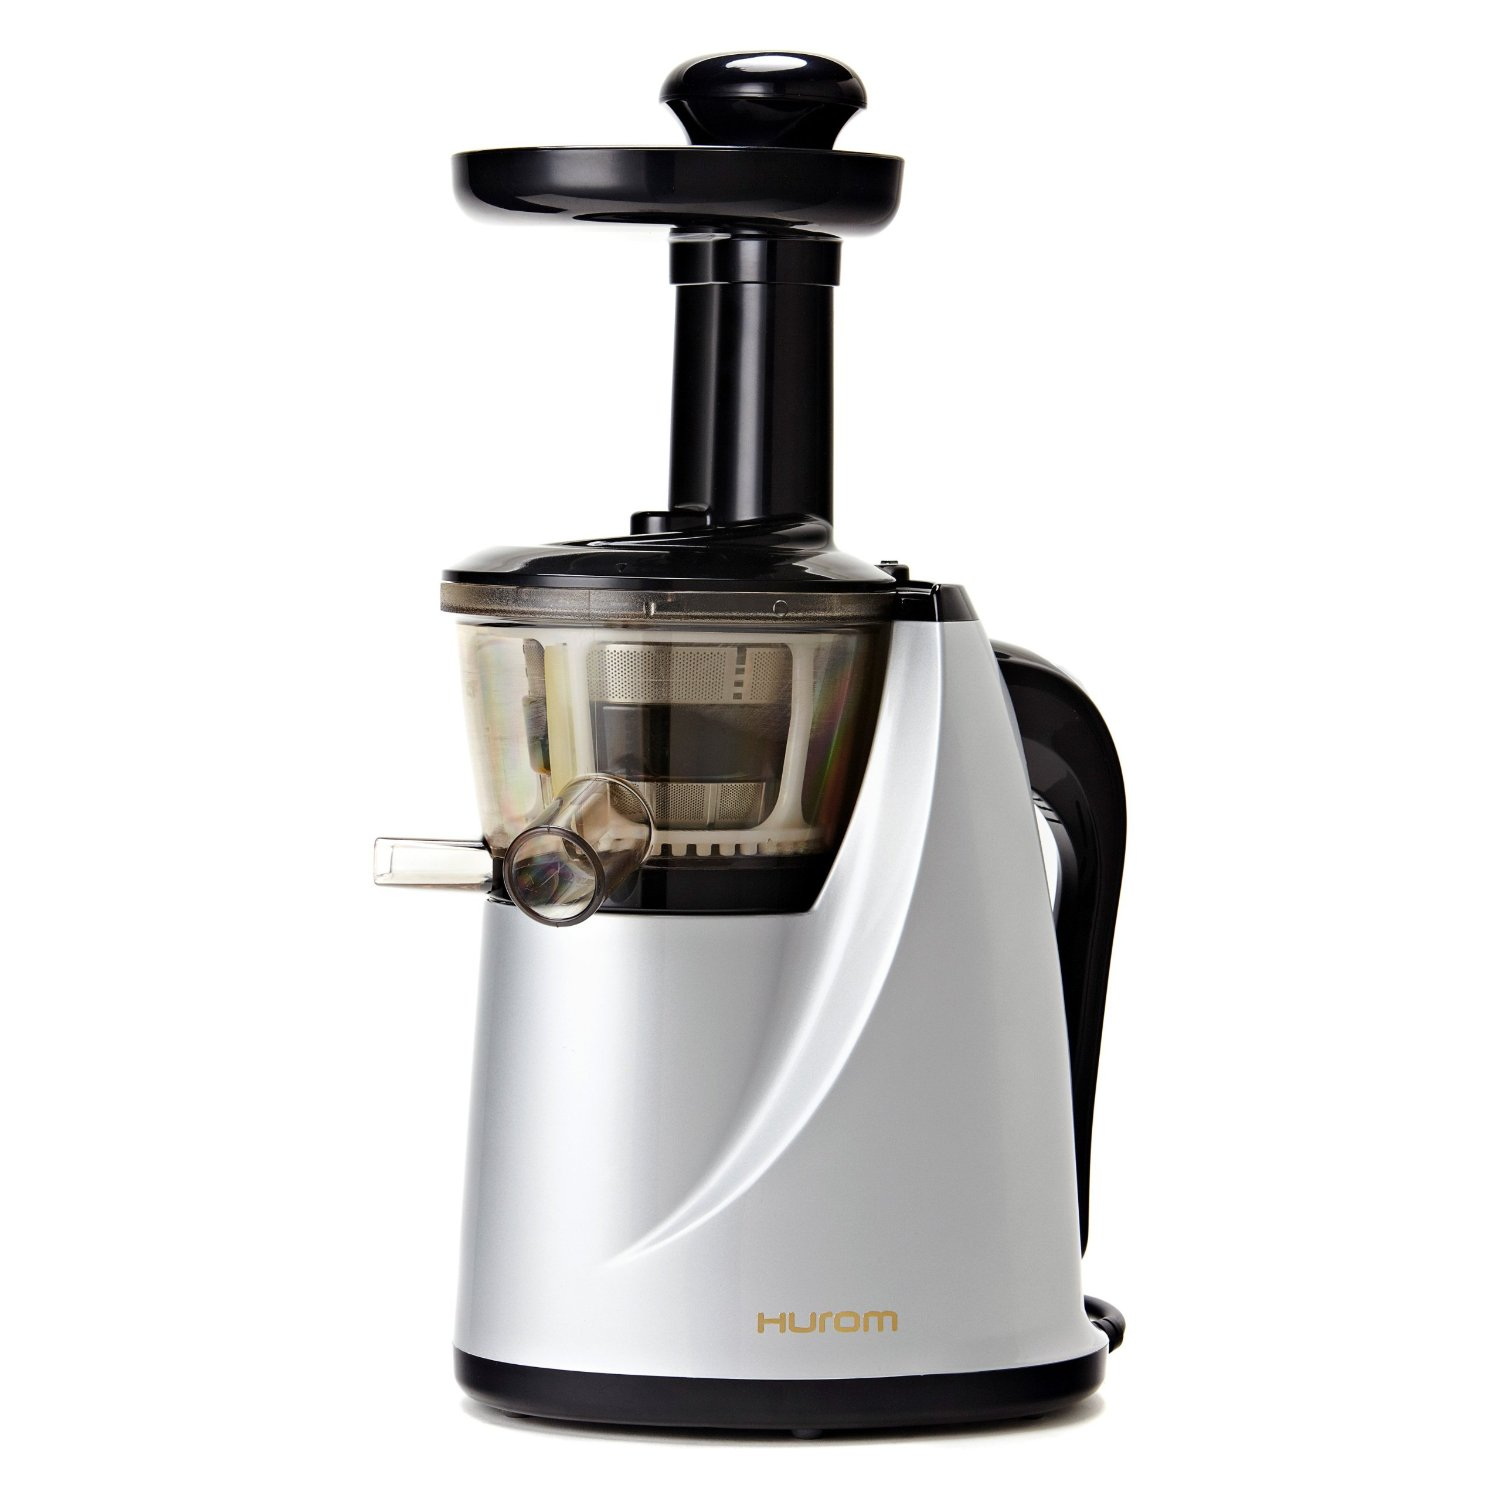 Slow Juicer Princess Review : Hurom HU-100 Masticating Slow Juicer Review - Best Cold Press Juicers